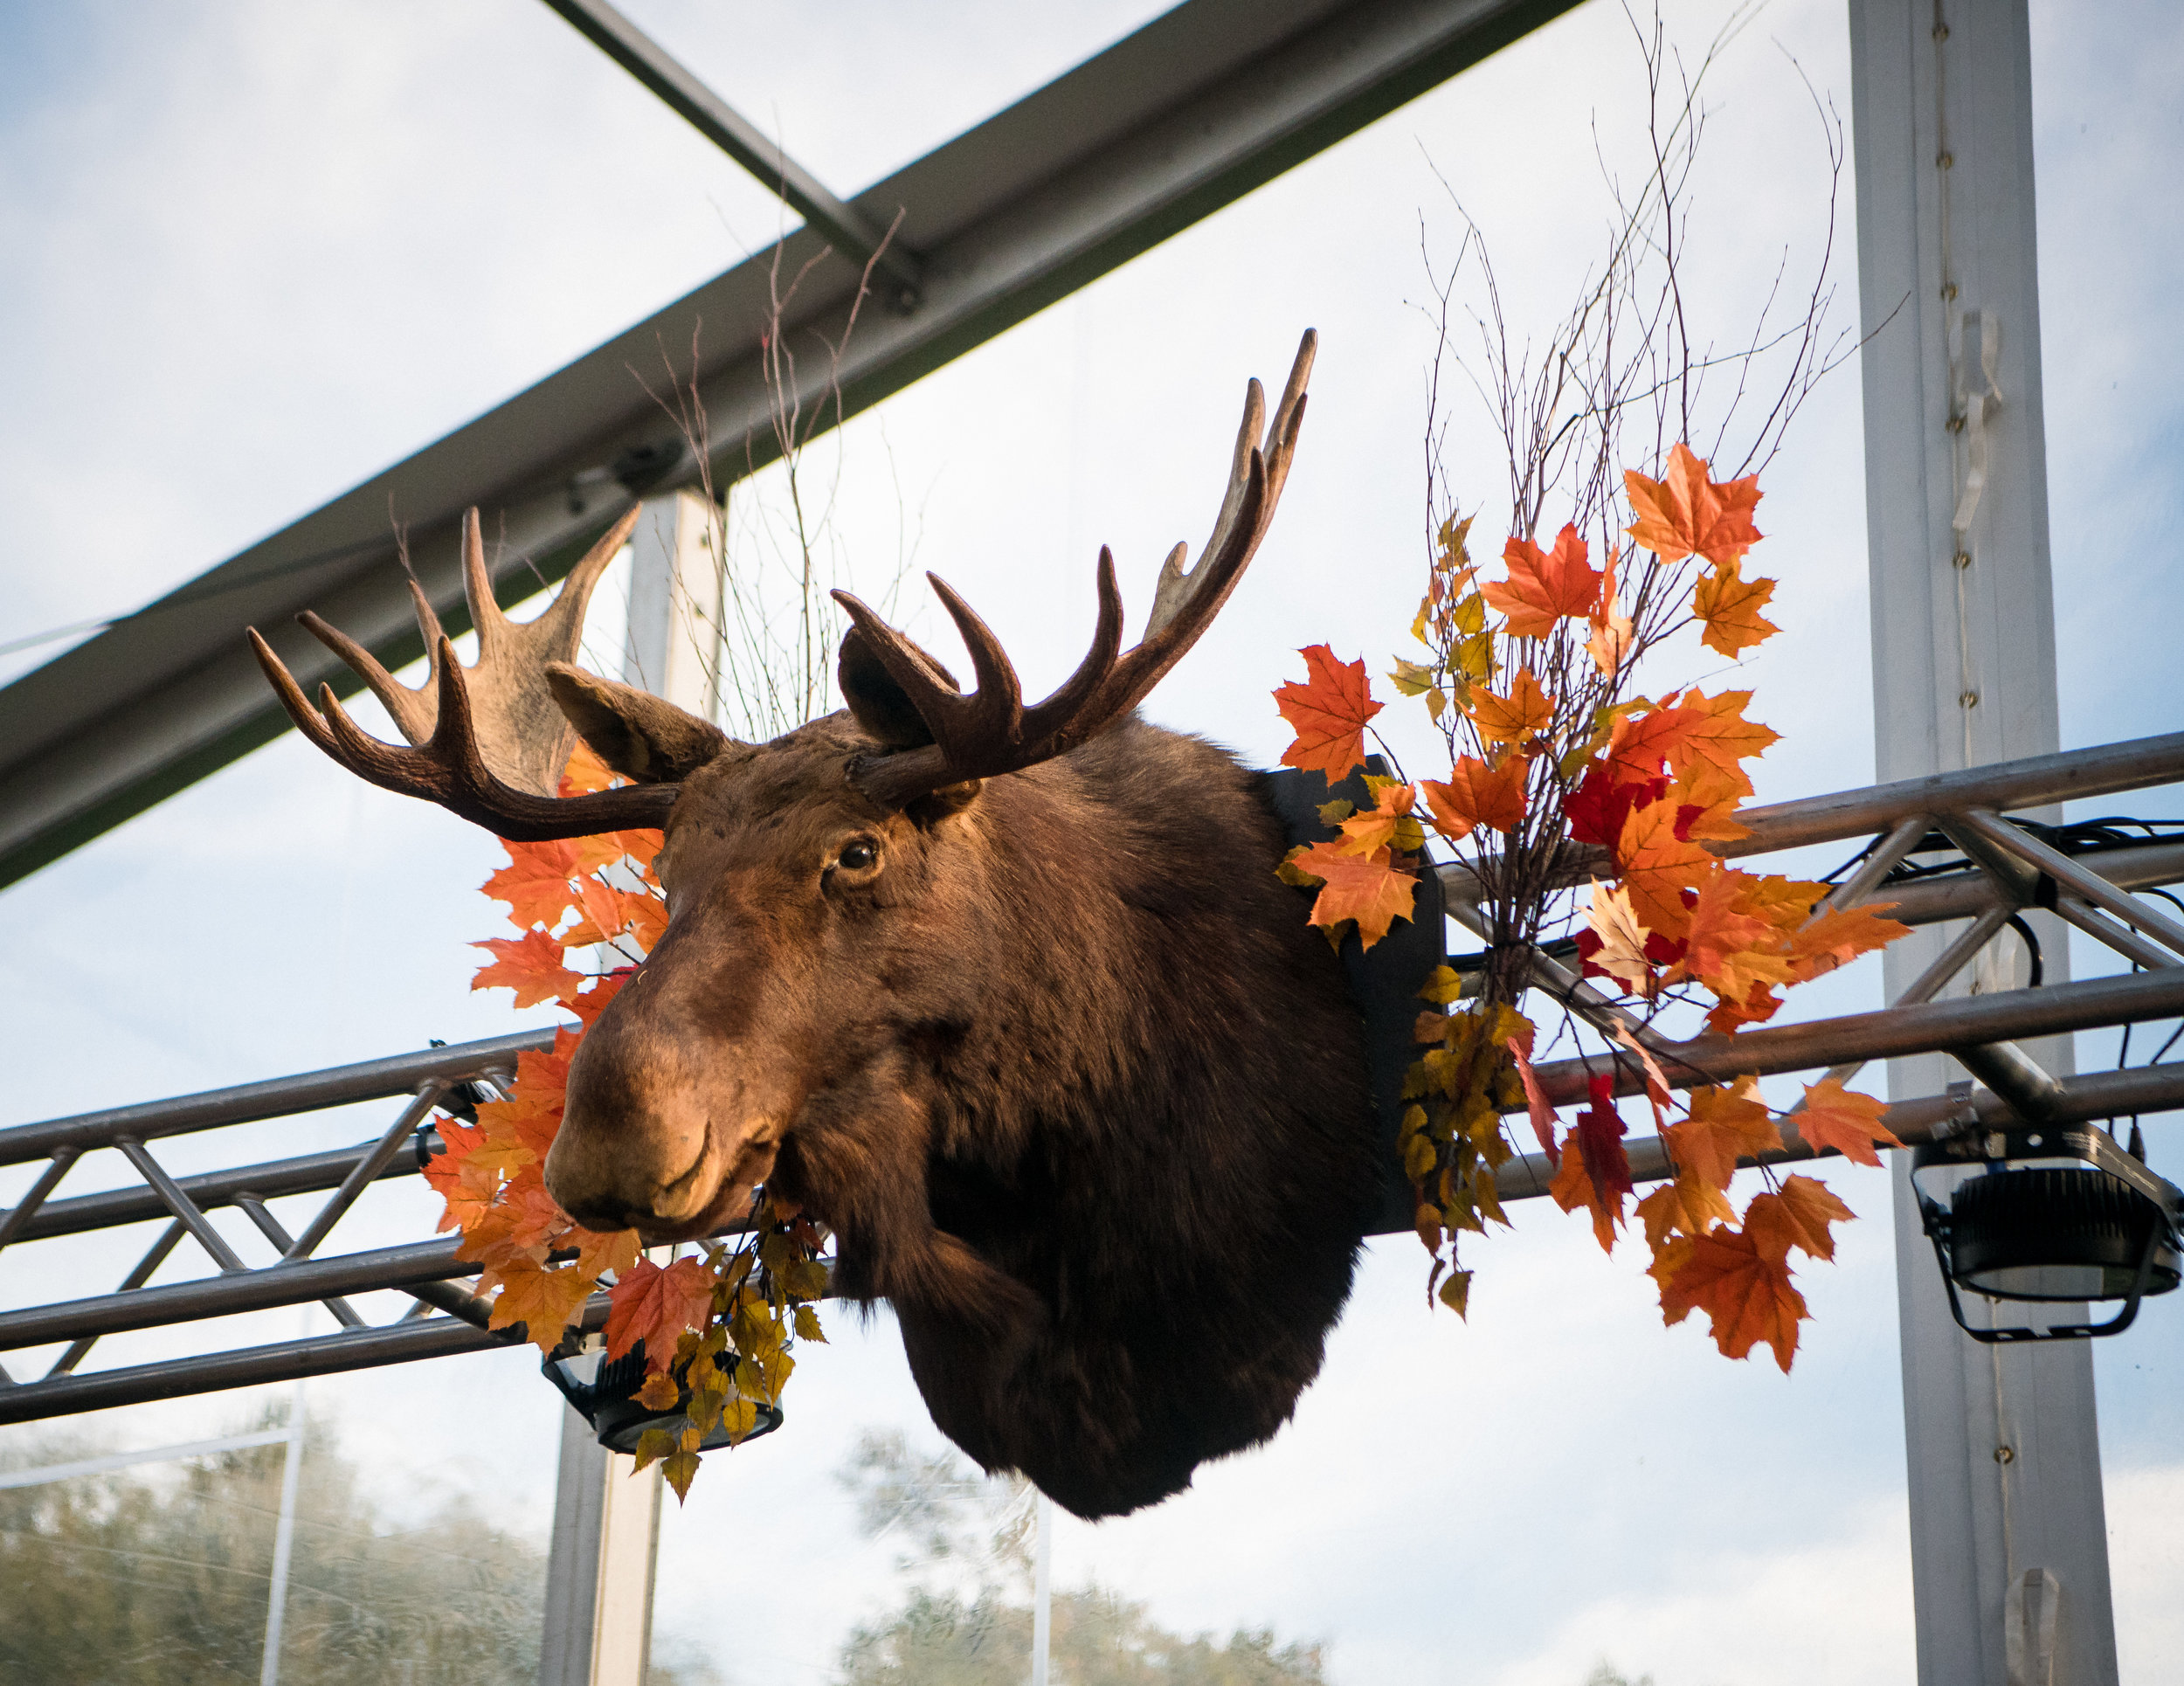 moose+head+rental+prop+rentals+nj+ny+pa+eggsotic+events.jpg